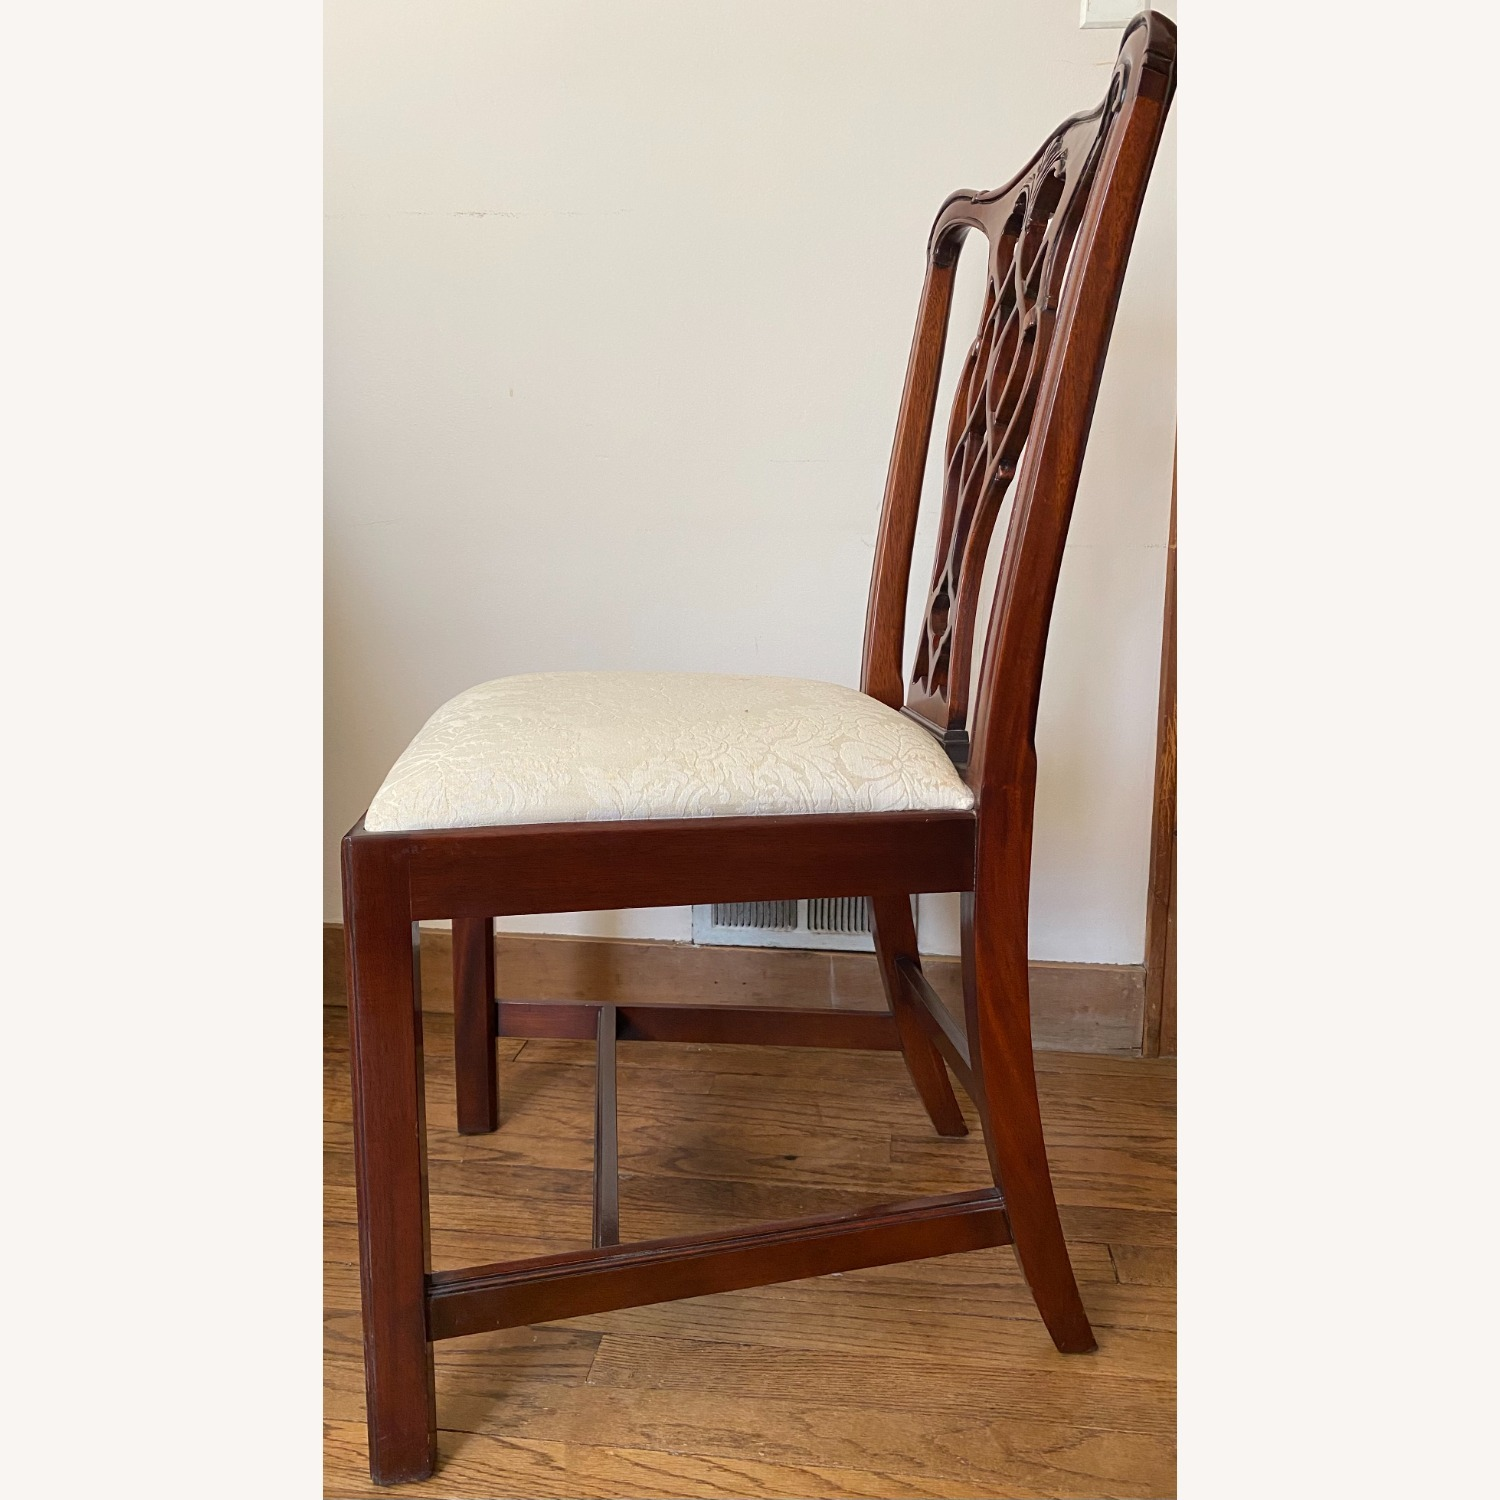 4 Councill Mahogany Chippendale Dining Chairs - image-4